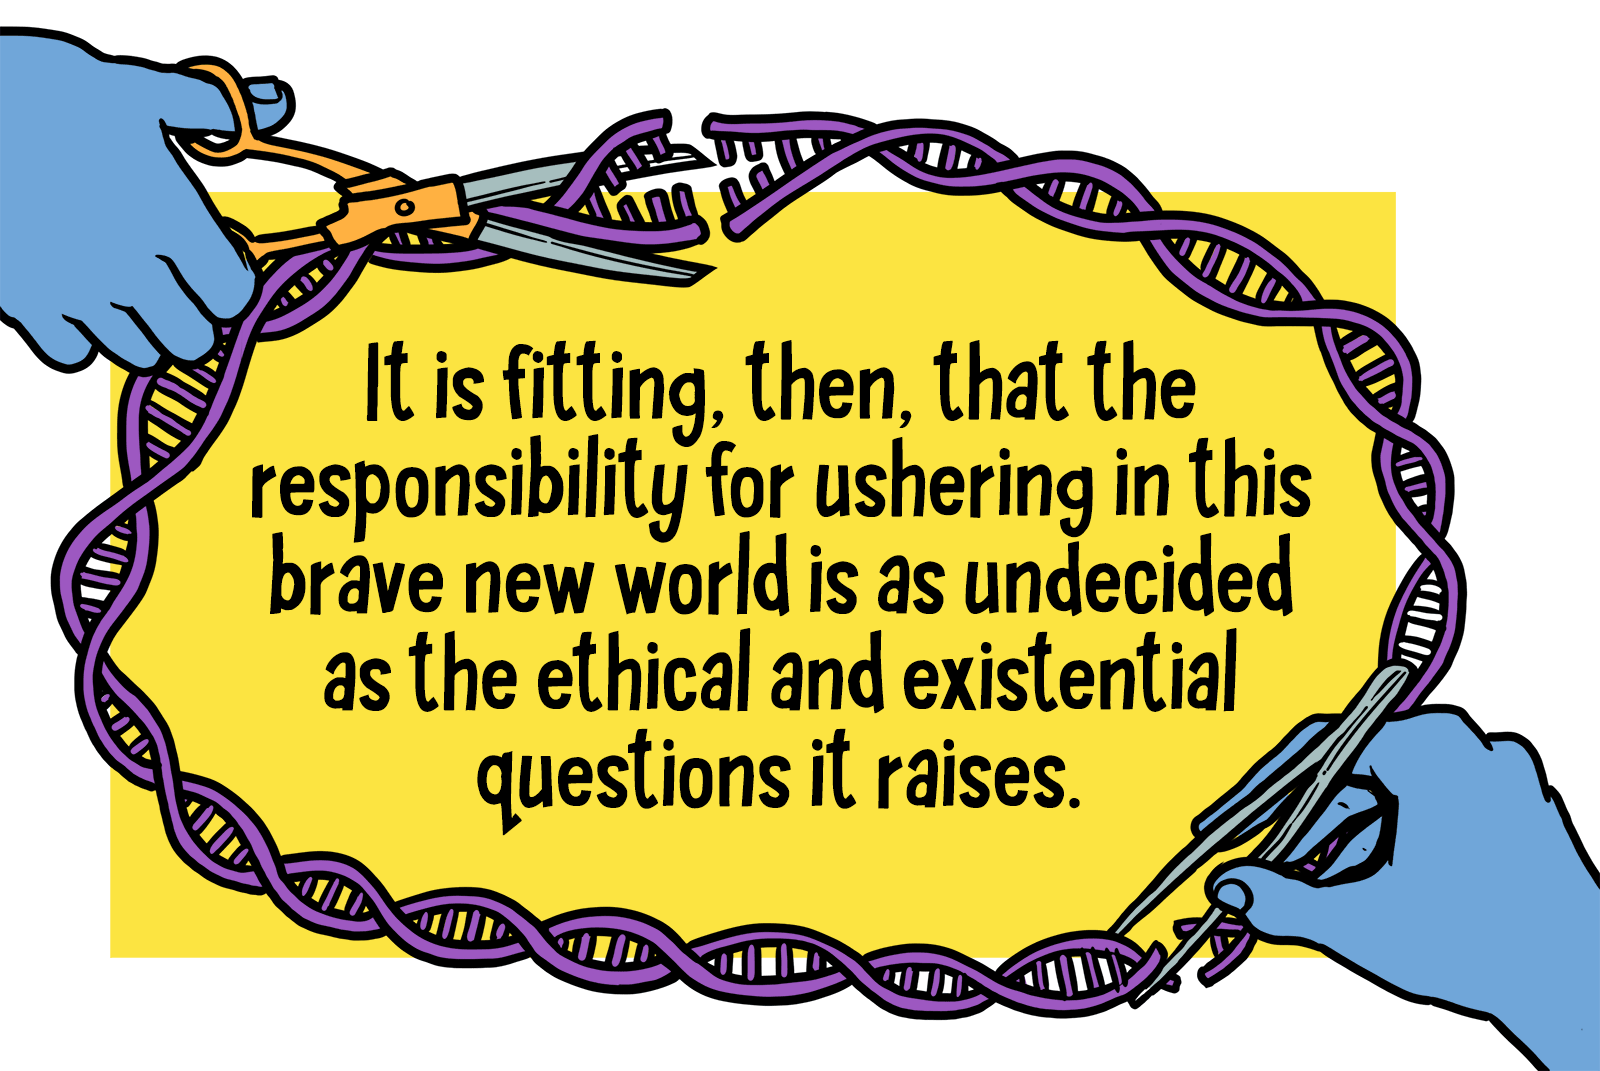 "Text reads: ""It is fitting then, that the responsibility for ushering in this brave new world is as undecided as the ethical and existential questions it raises."" Bordering the text are strands of DNA. A hand is snipping parts of it, and a glue bottle is featured at the top left corner of the border."